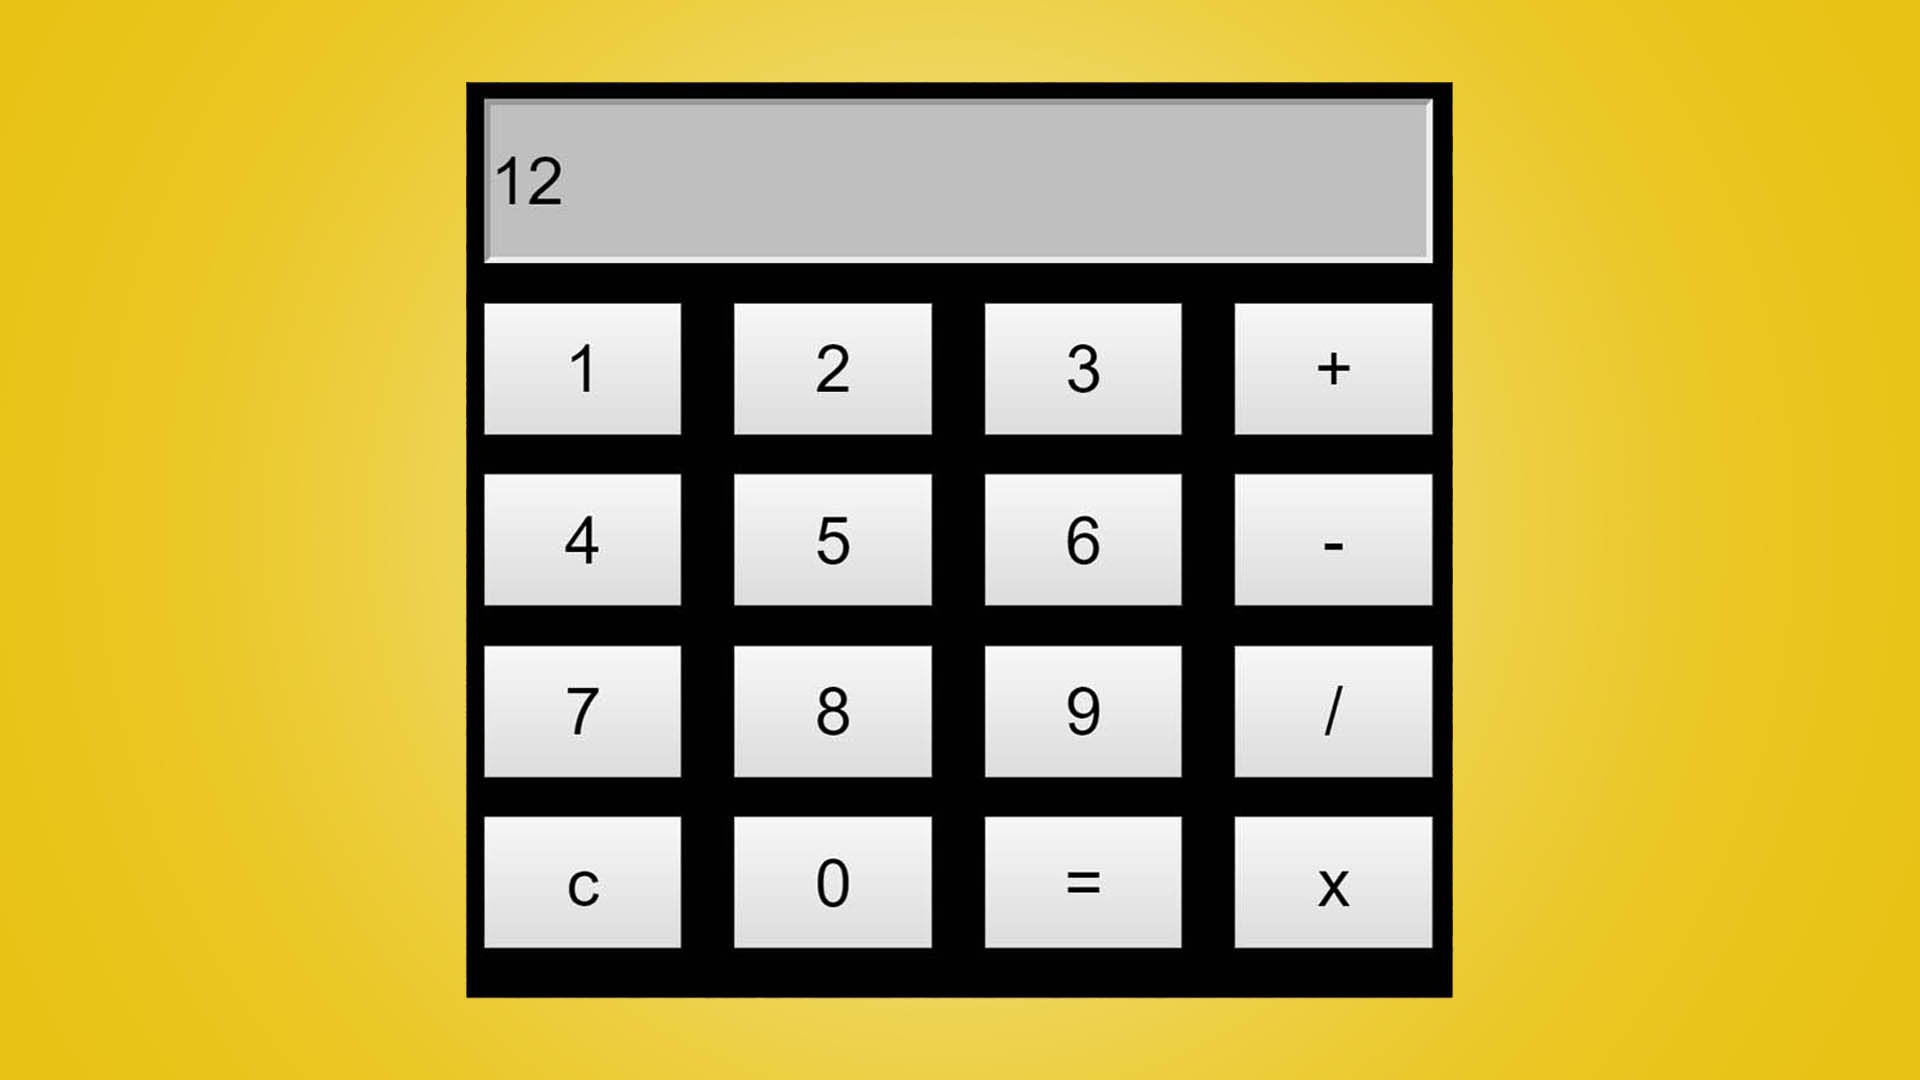 Build a Simple Calculator using HTML, CSS and Javascript